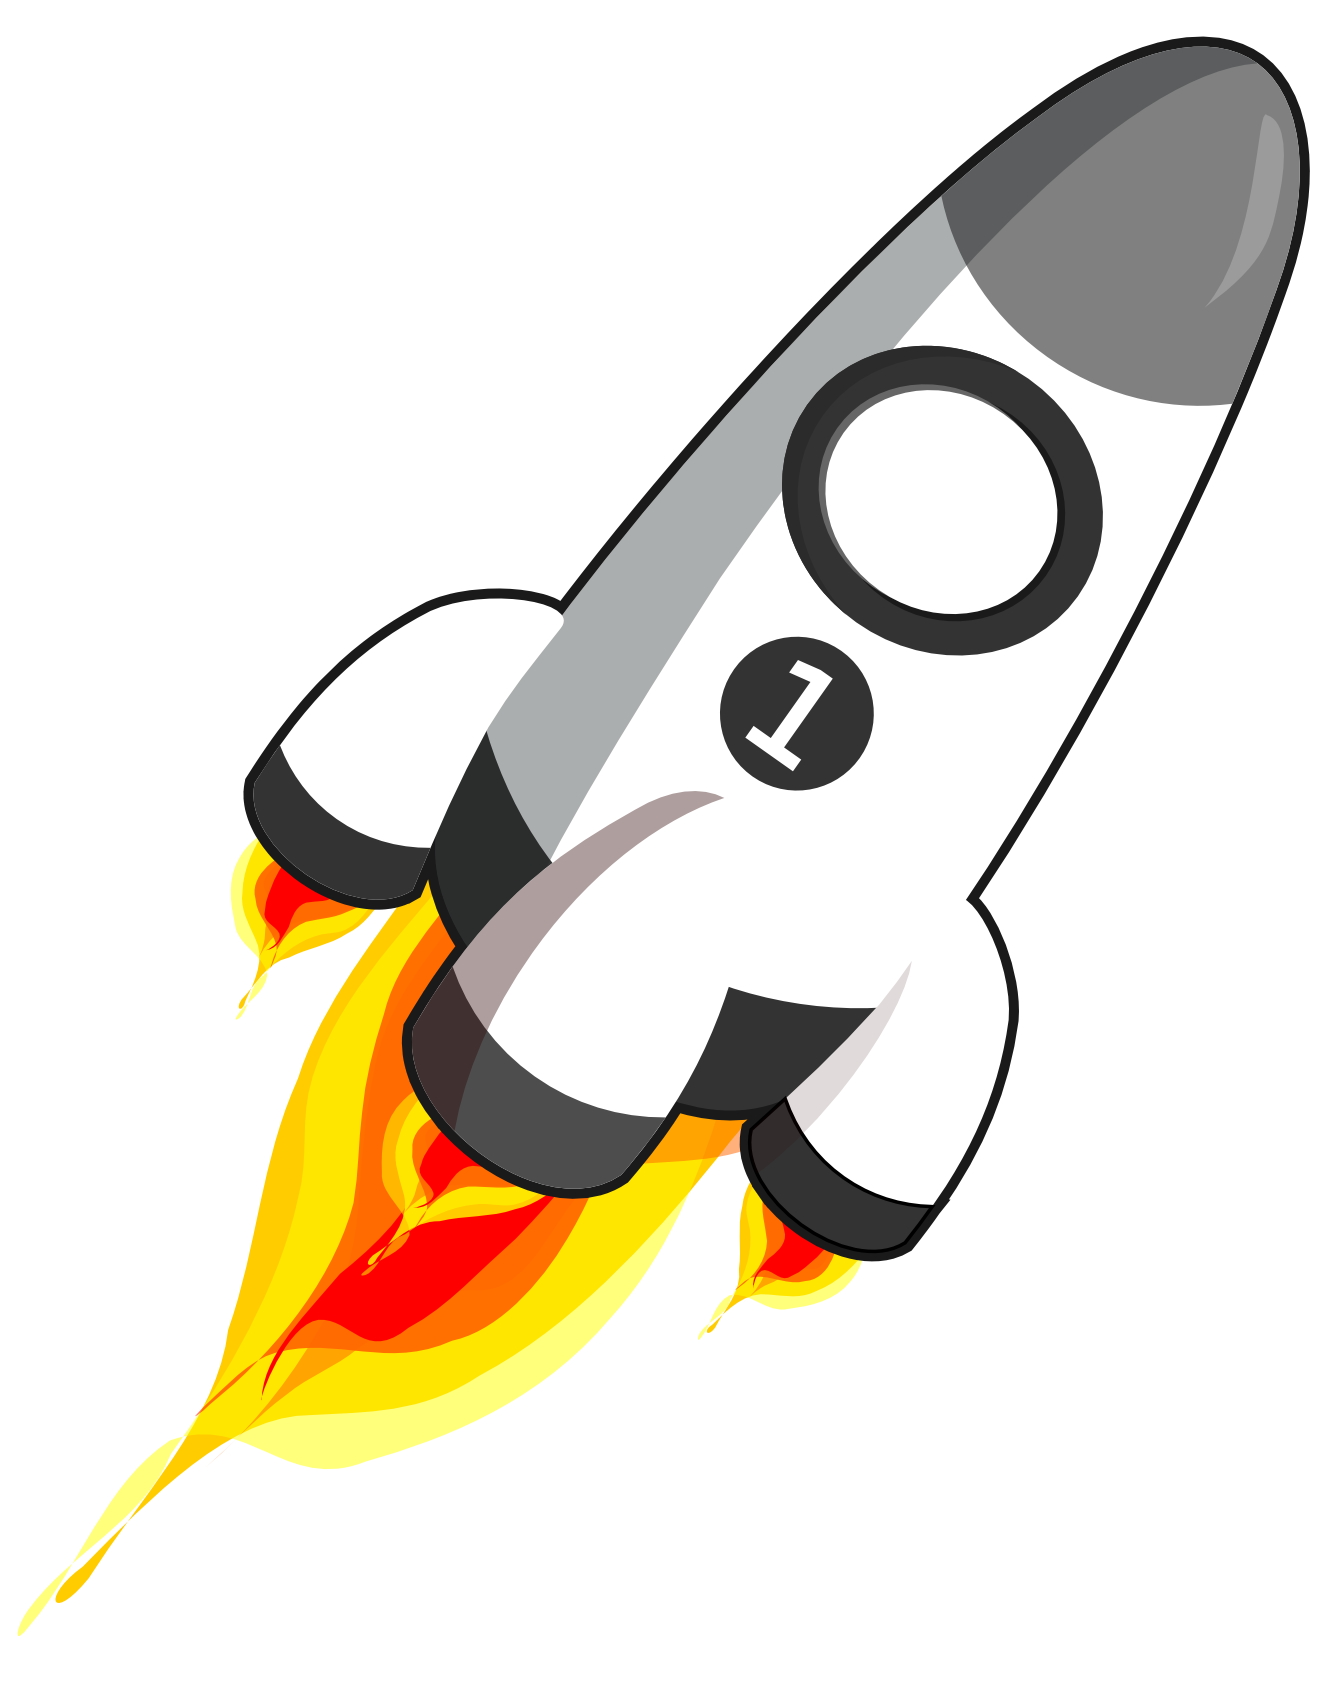 Bible blast off clipart png free download Free Blast Cliparts, Download Free Clip Art, Free Clip Art on ... png free download